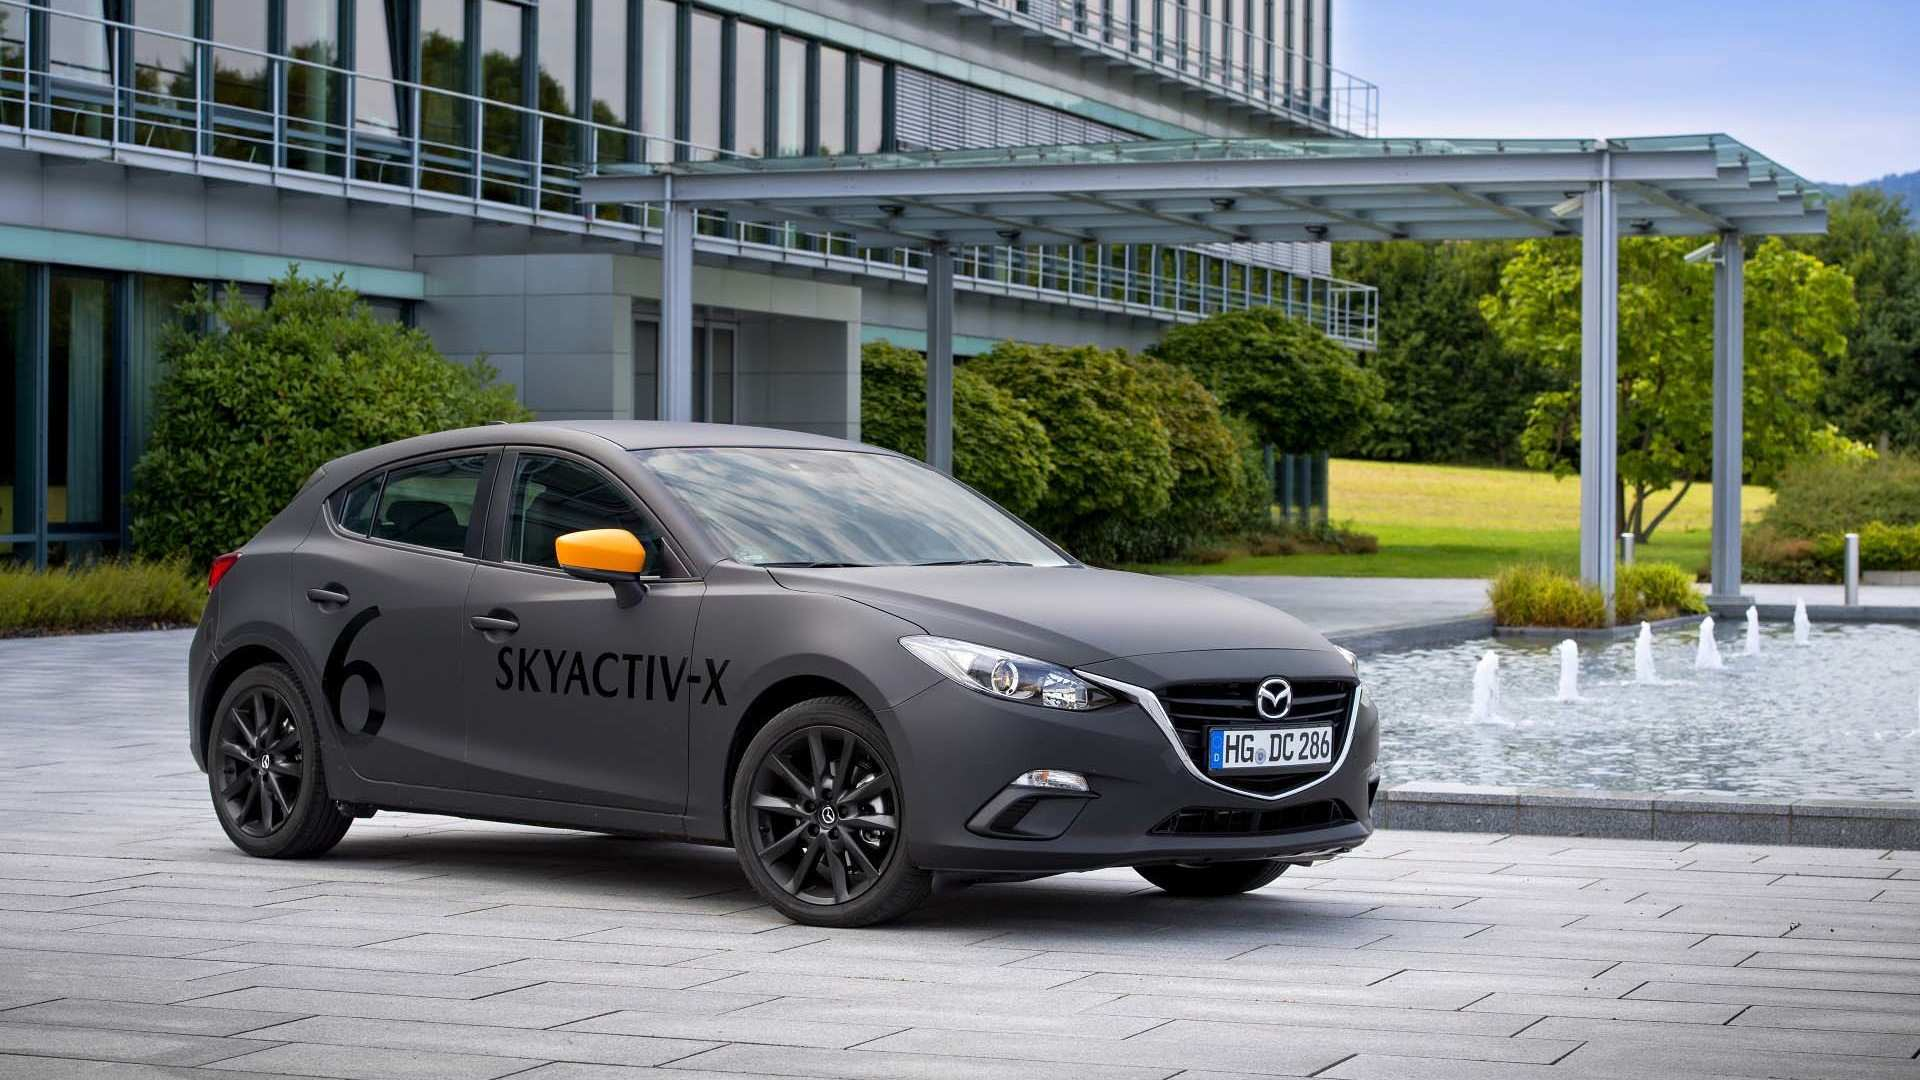 58 Concept of 2020 Mazda Lineup Style by 2020 Mazda Lineup